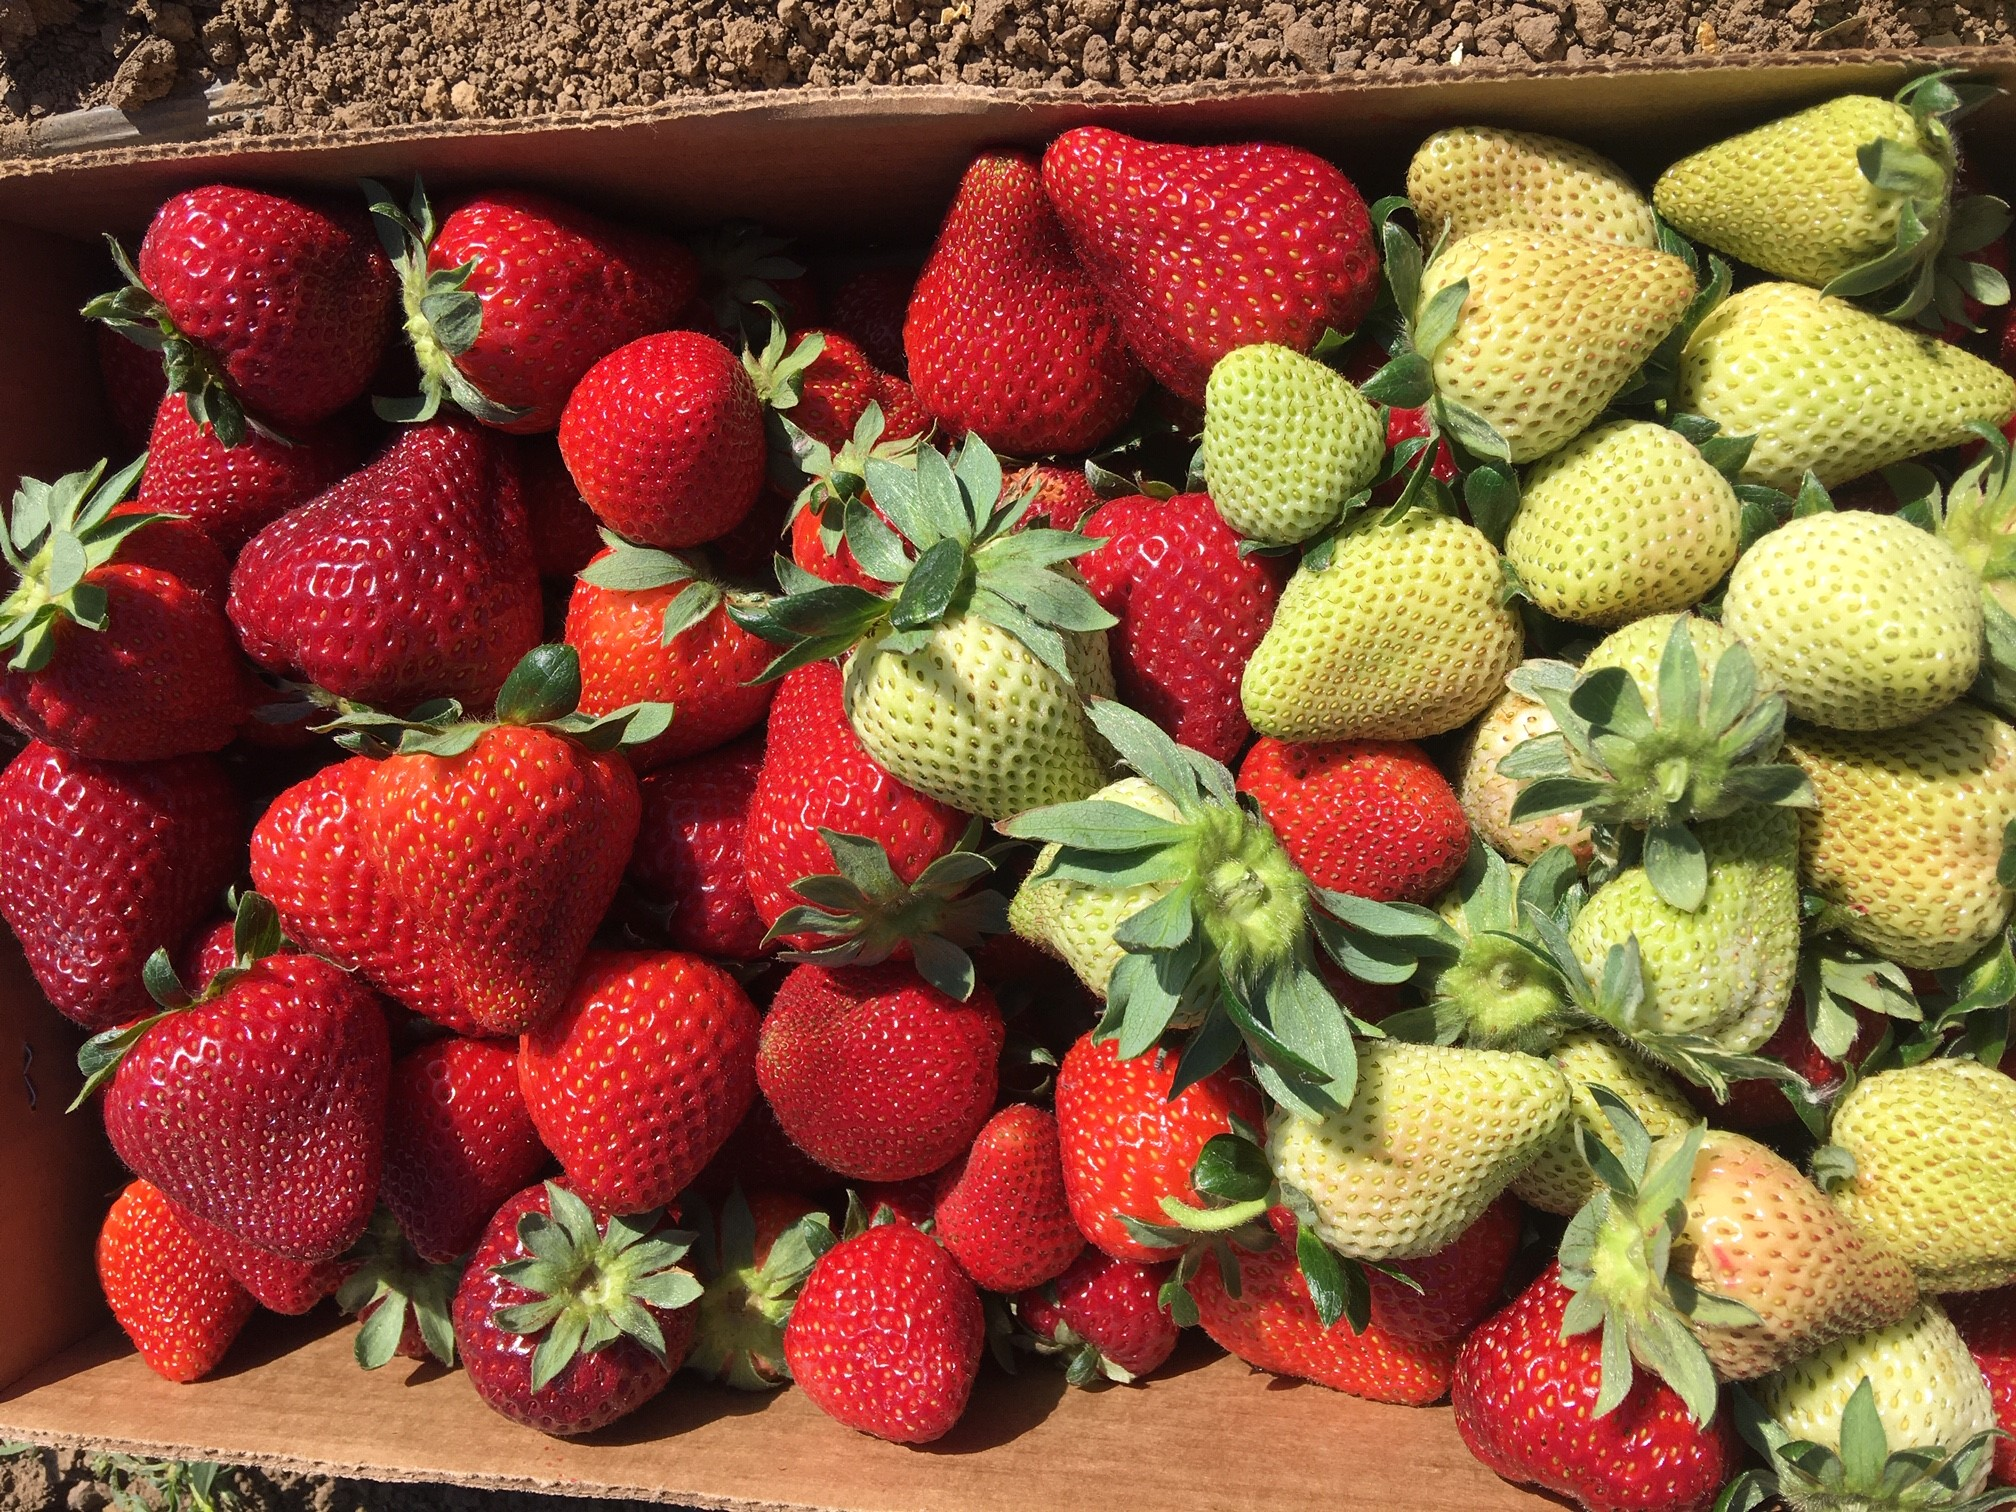 Local Brentwood strawberries